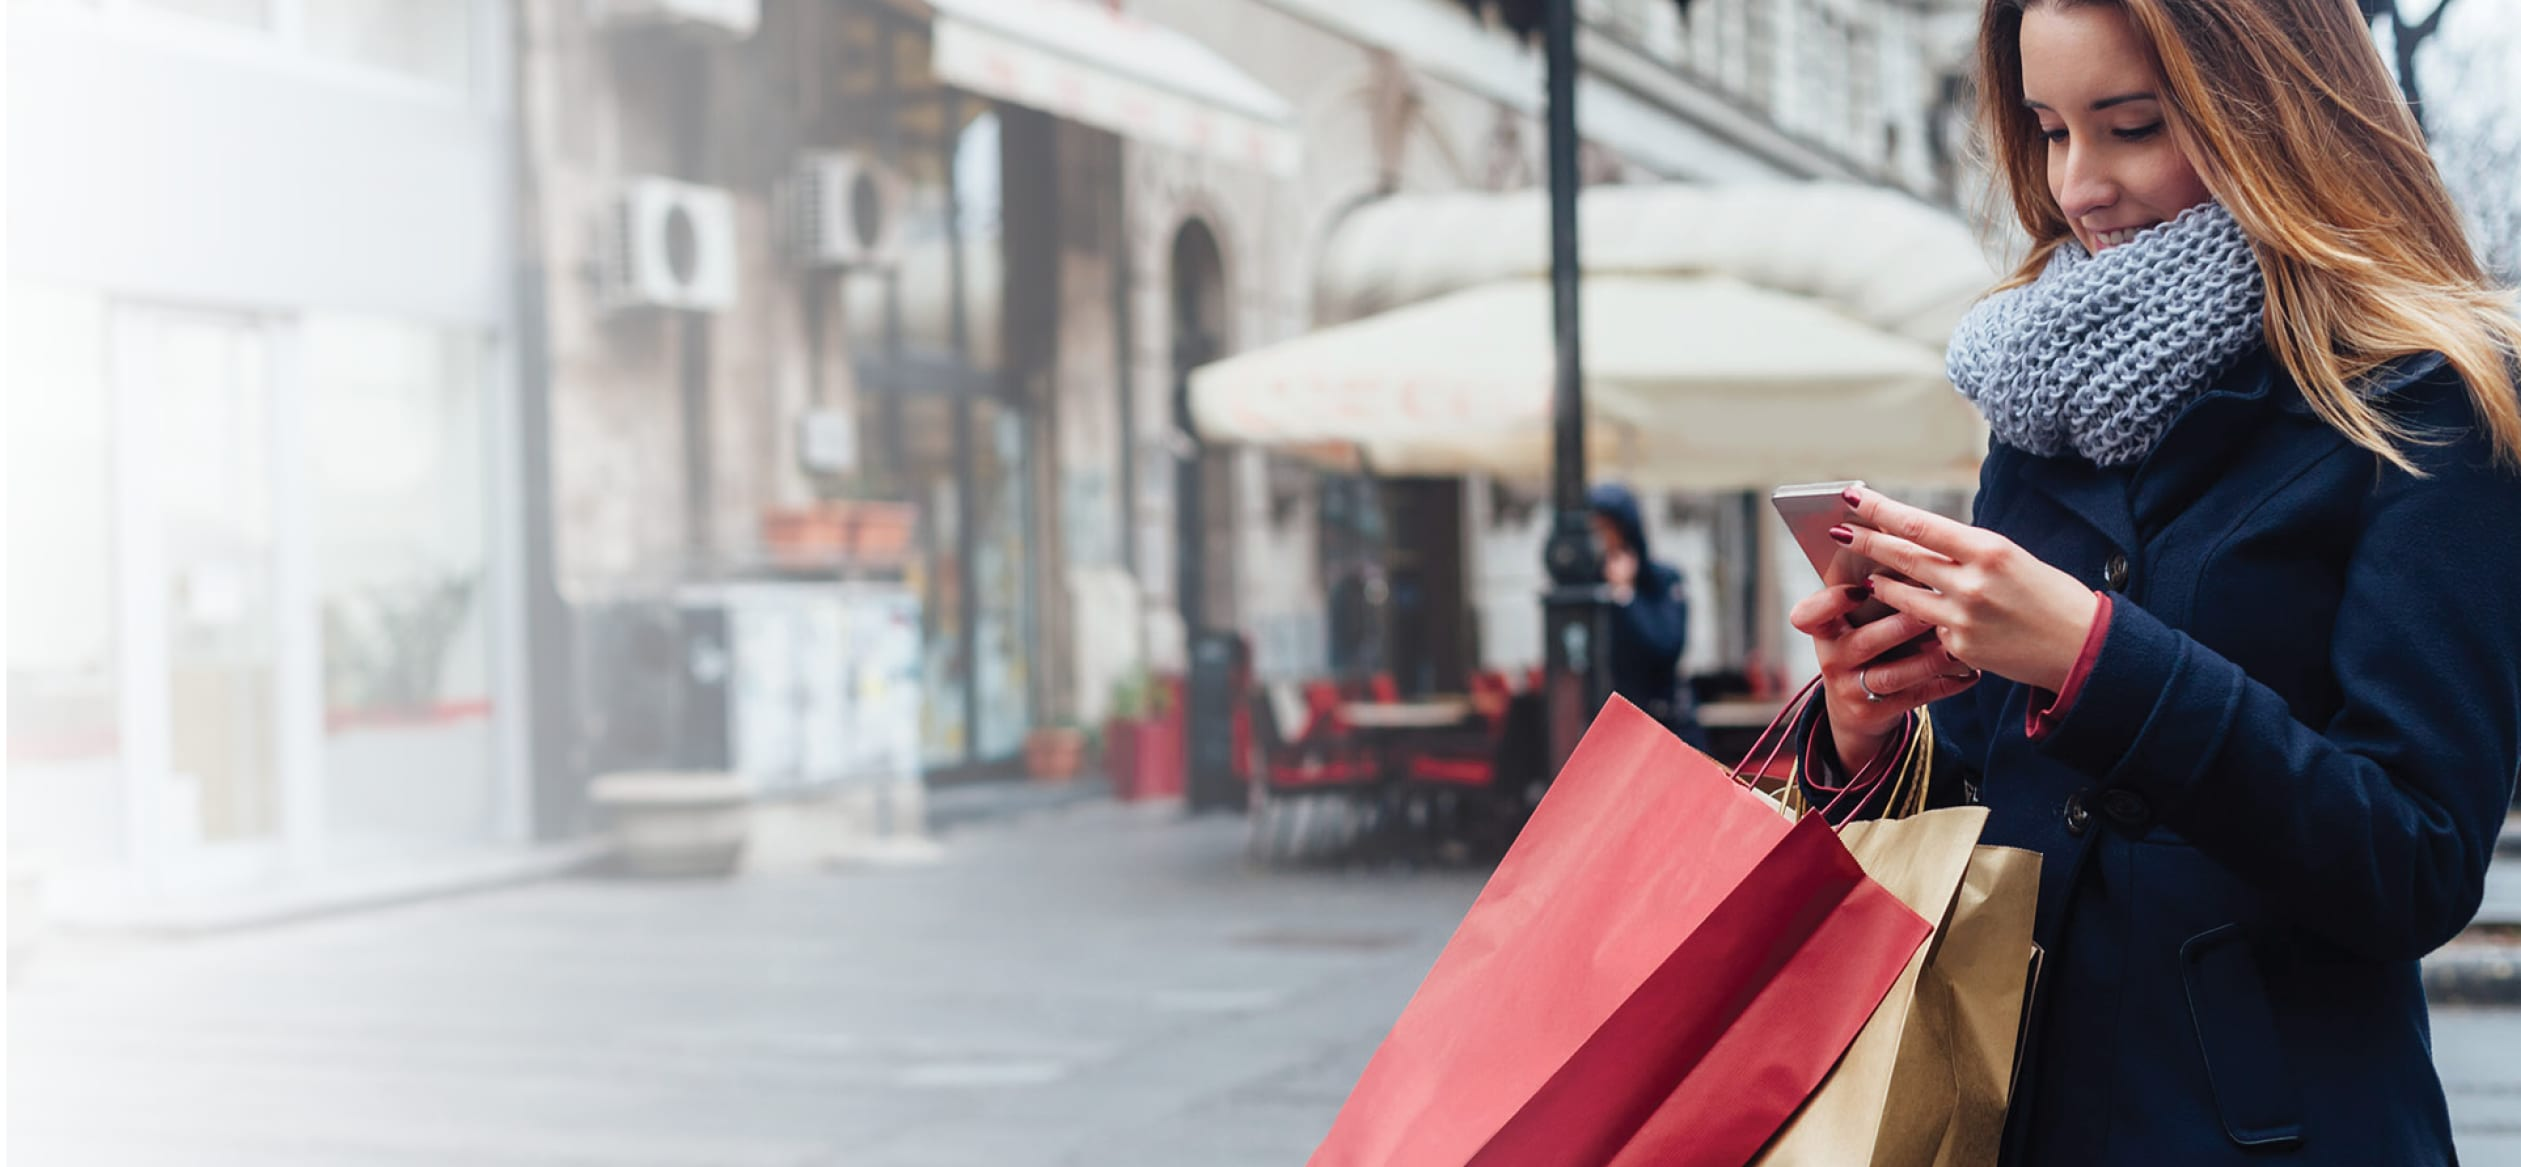 woman carrying shopping bags while on her phone